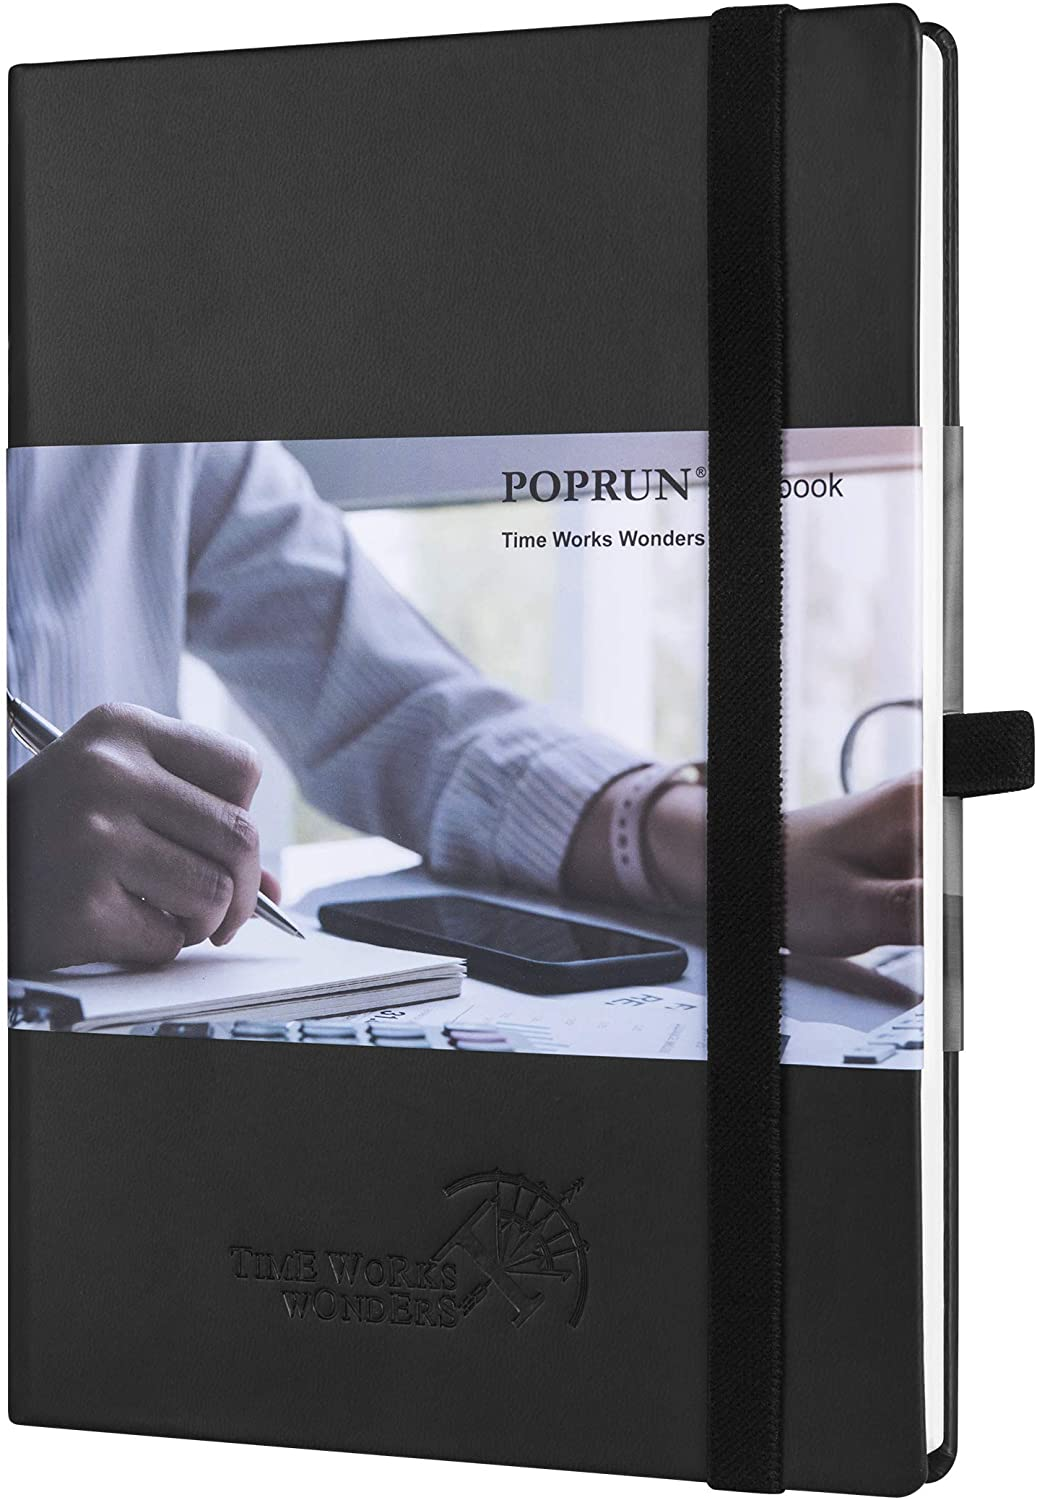 College Ruled Notebook Journal - Vegan Leather Hard Cover, Premium 120 gsm Ivory Paper, 155 Numbered Pages with Perforated Corner, 6 x 8.5 inches (Lined, Black)